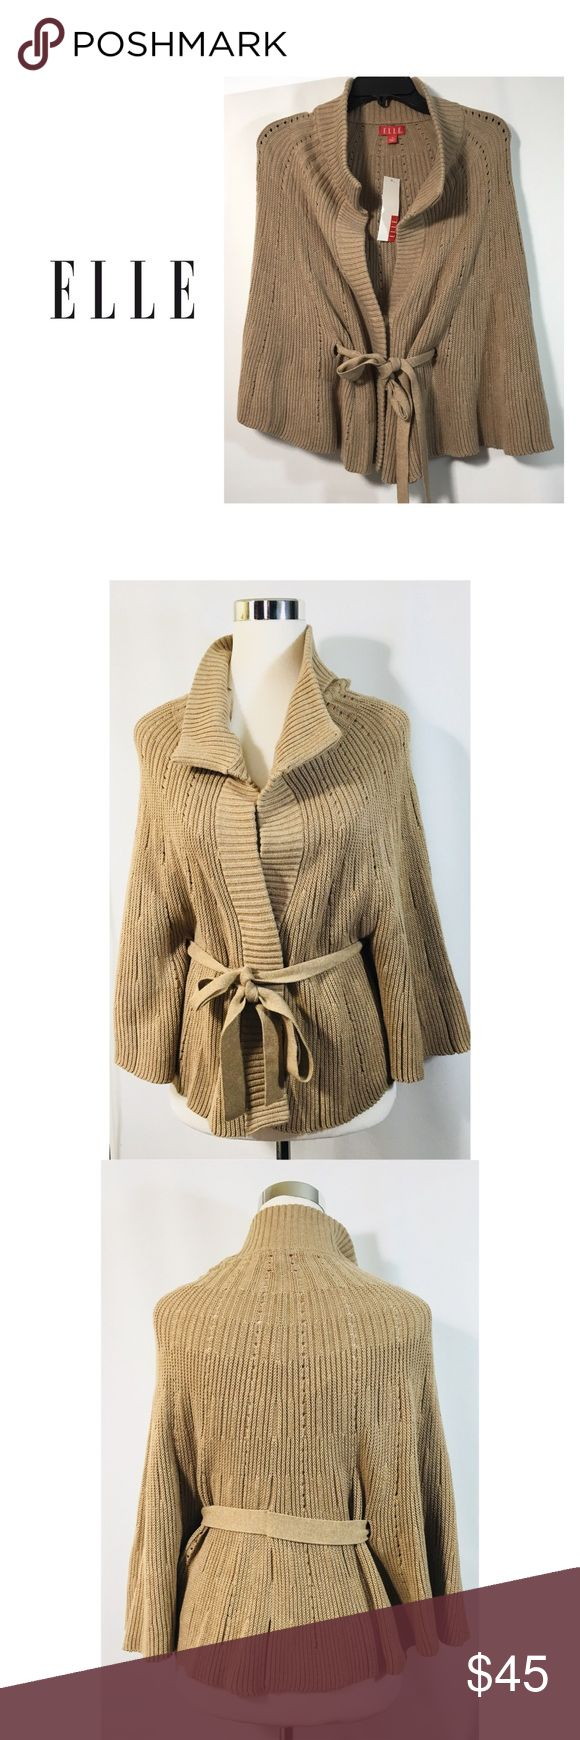 """NWT ELLE Womens Sz M Tan Sweater Cape With Tie A Soft Cape sweater with tie in a Tan color, by ELLE.      Size: M     Length Approx. 23""""     Shoulder to Shoulder flat Approx. 19""""     Flat across Middle Approx. 23""""     3 Front snap closure buttons ( extra included)     V-neck- Ribbed Collar     Three-quarter sleeves     60% Cotton/40% Acrylic     Brand new with tags           # 000-0218 ELLE Jackets & Coats Capes"""